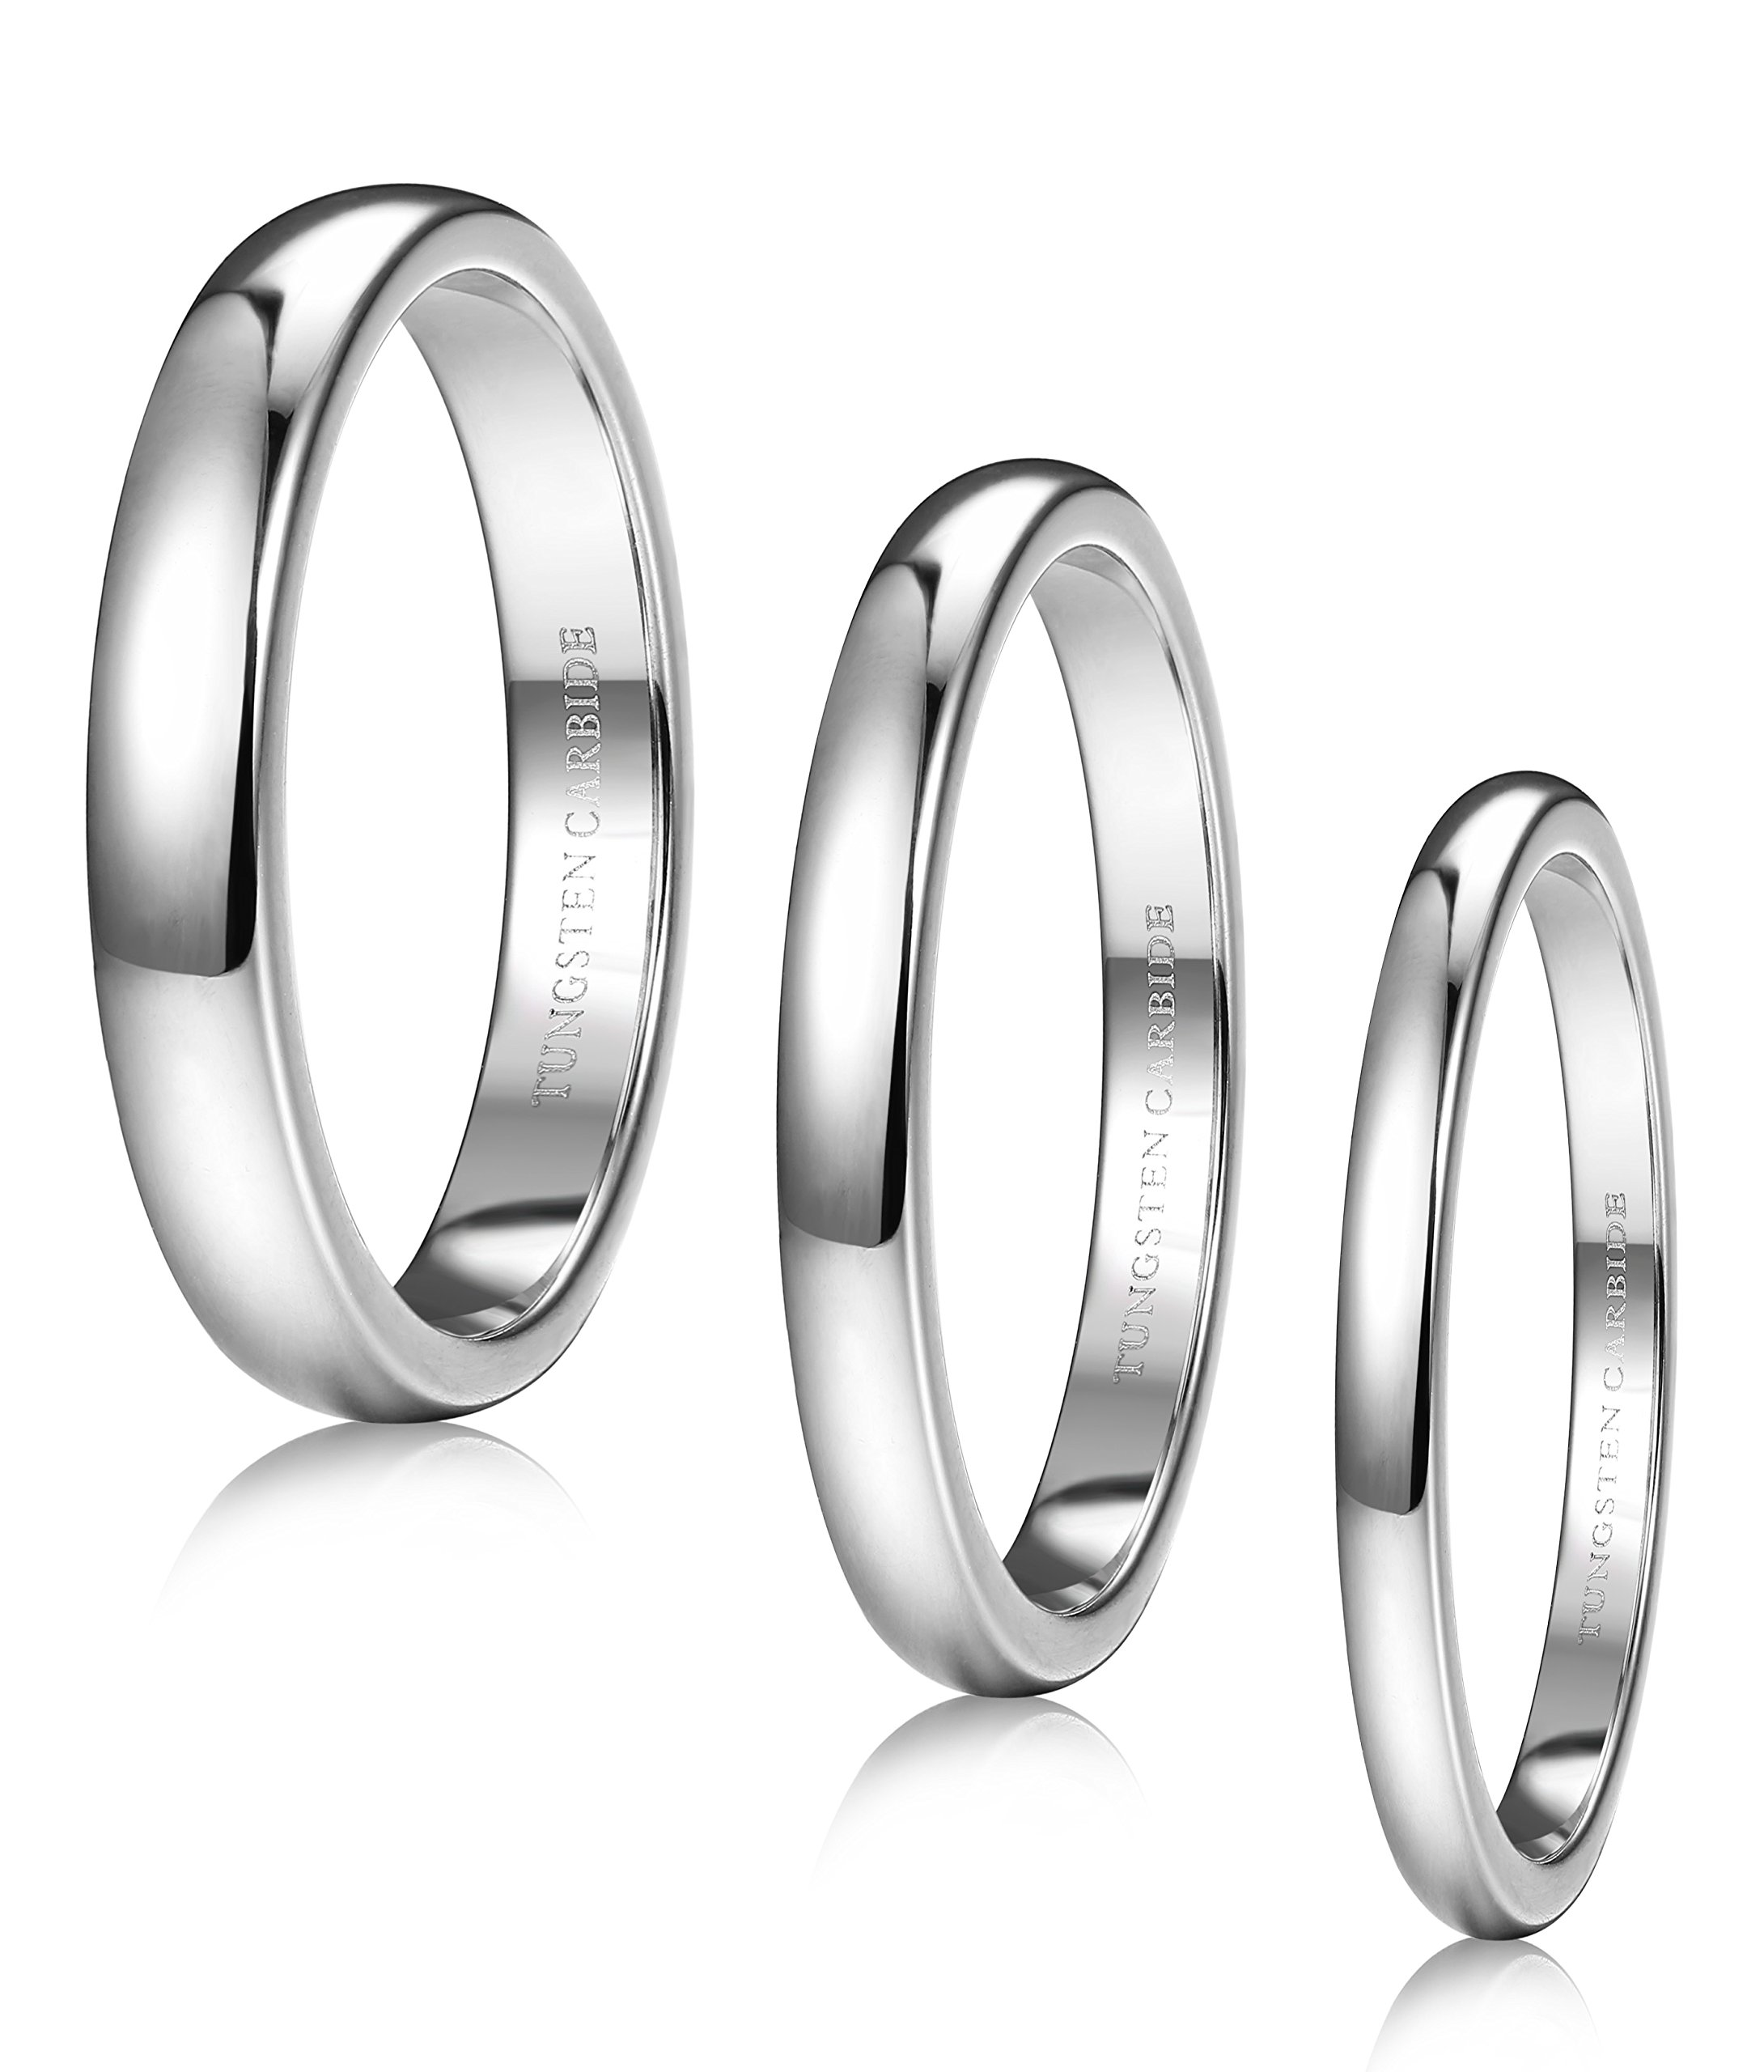 Tungary 3 Pcs Tungsten Carbide Rings for Men Women Wedding Band Engagement Promise Domed 2-4mm Size 5